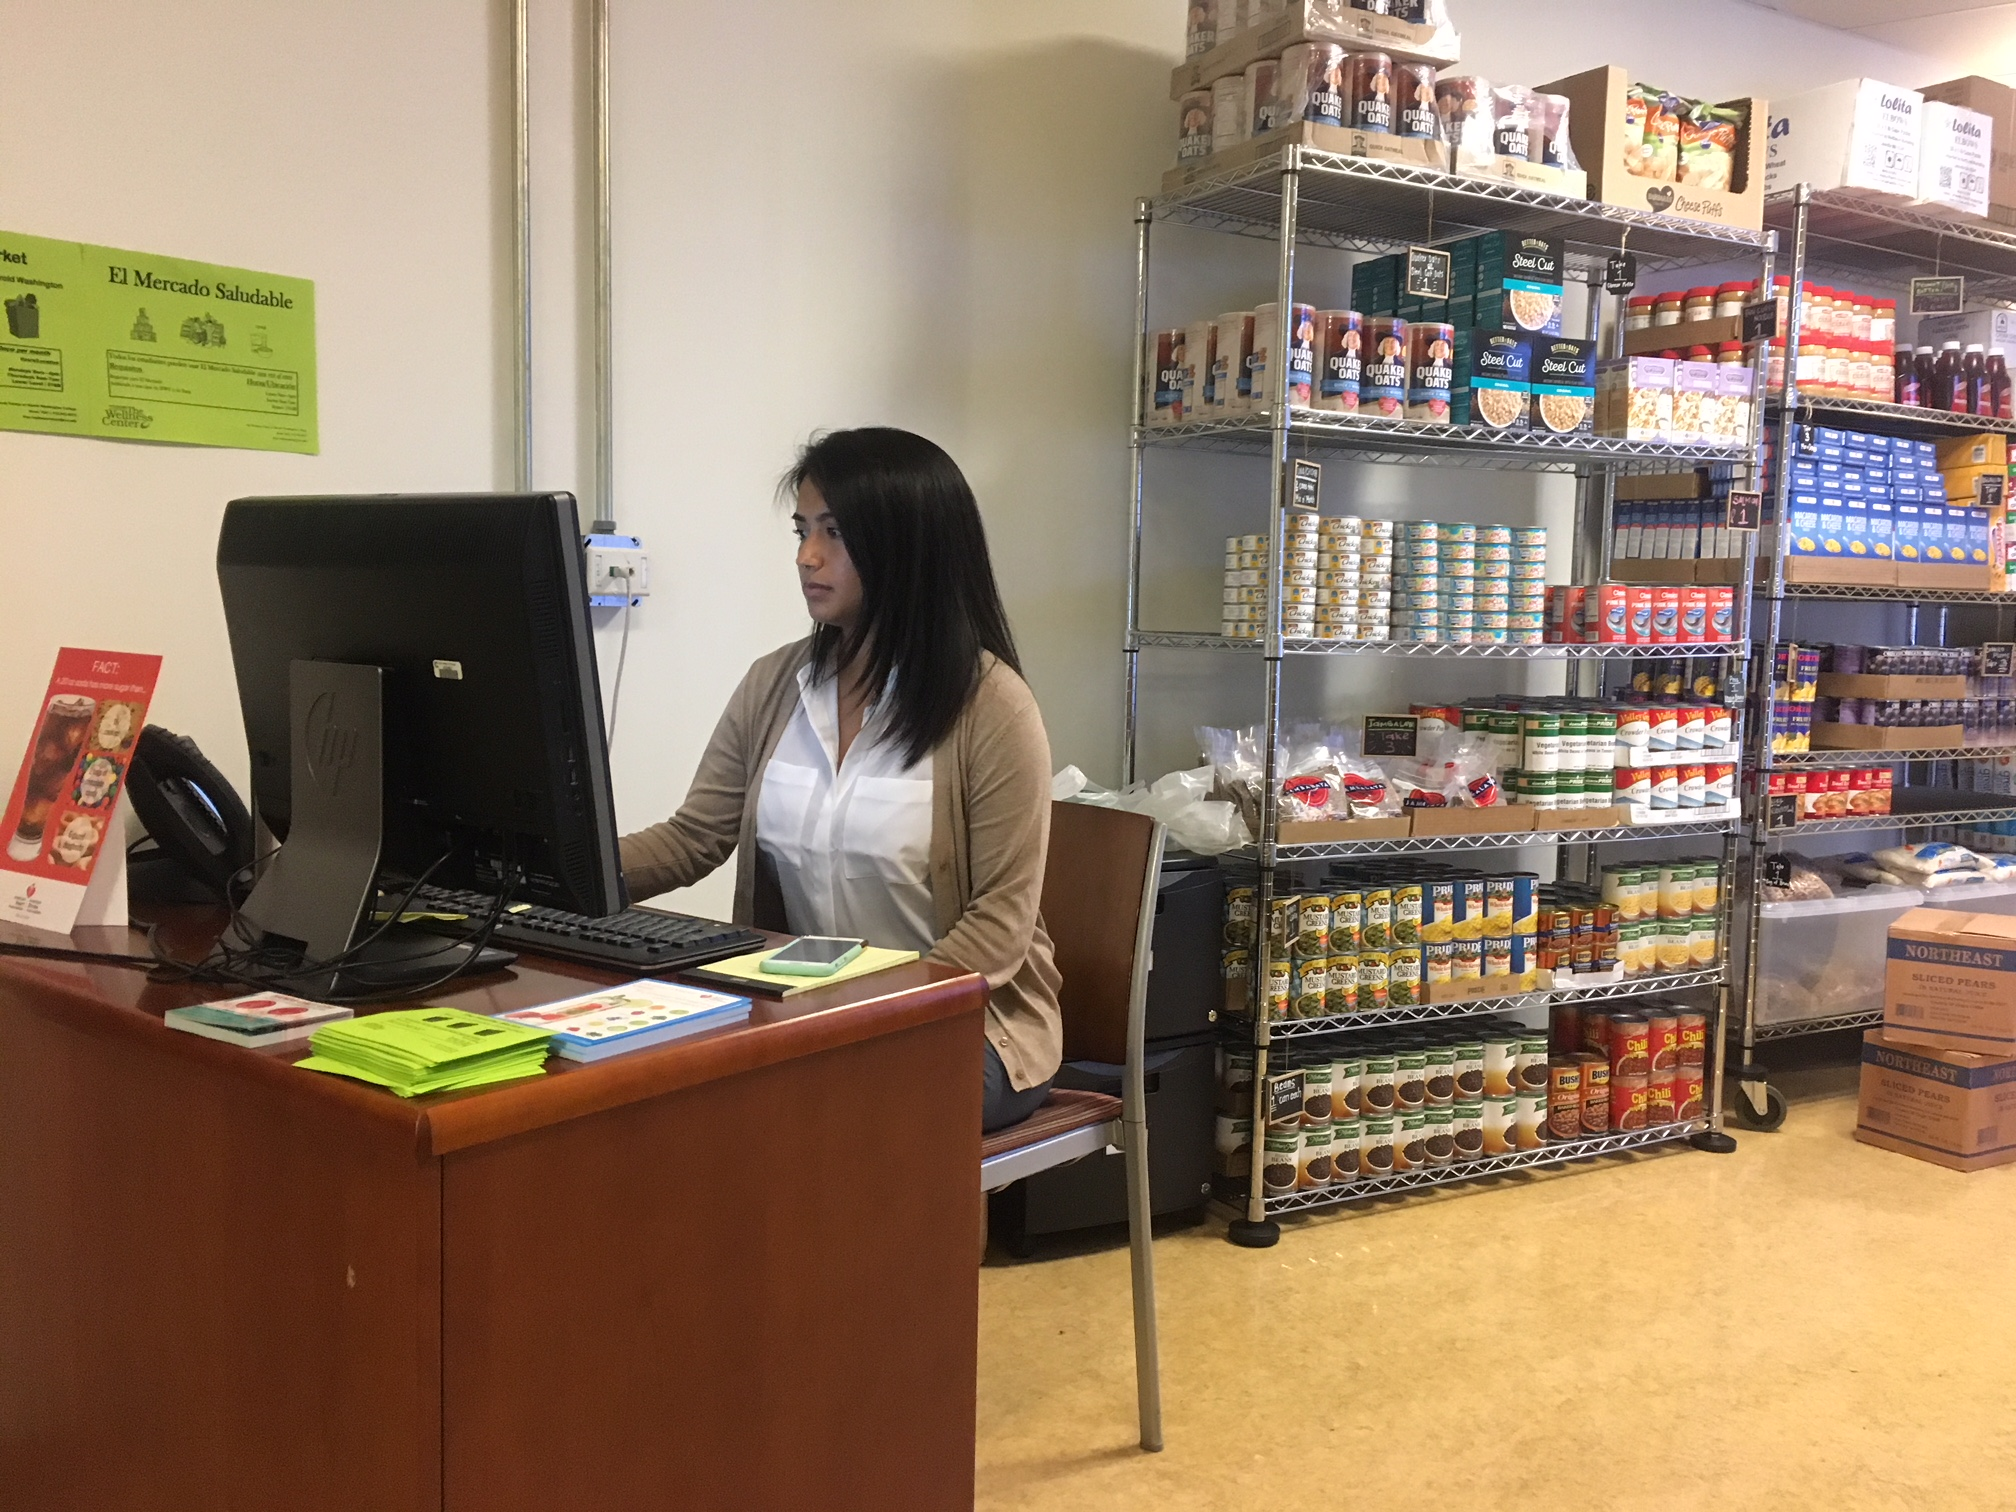 Marissa Cirillo, who works at the Harold Washington College Wellness Center, manages the food pantry recently opened for students. Students don't have to check out. Instead, a sign next to each product tells students how much they can take. (Kate McGee/WBEZ)